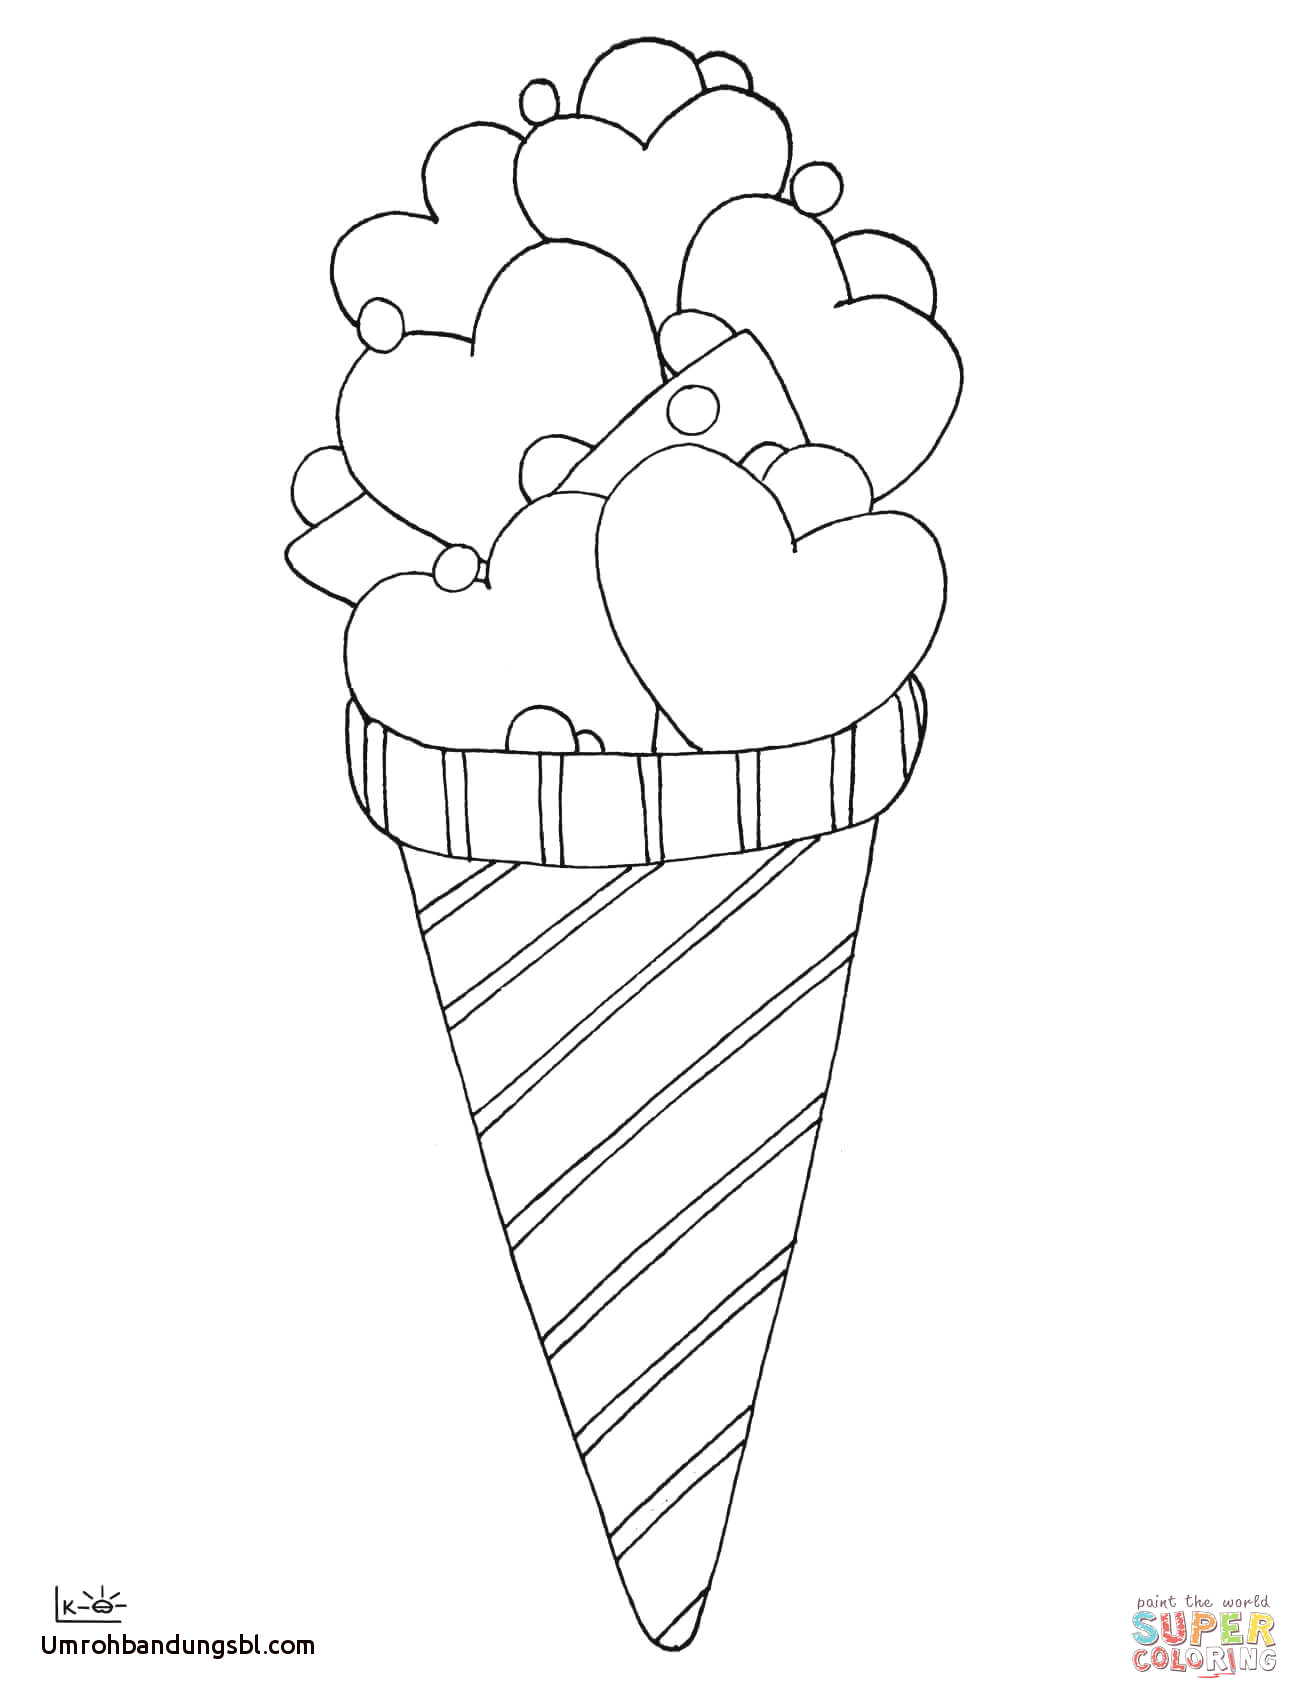 ice cream coloring pages Collection-Cool Ice Cream Coloring Pages Best Love Ice Cream Coloring Page Desserts Pages Fresh 6-q